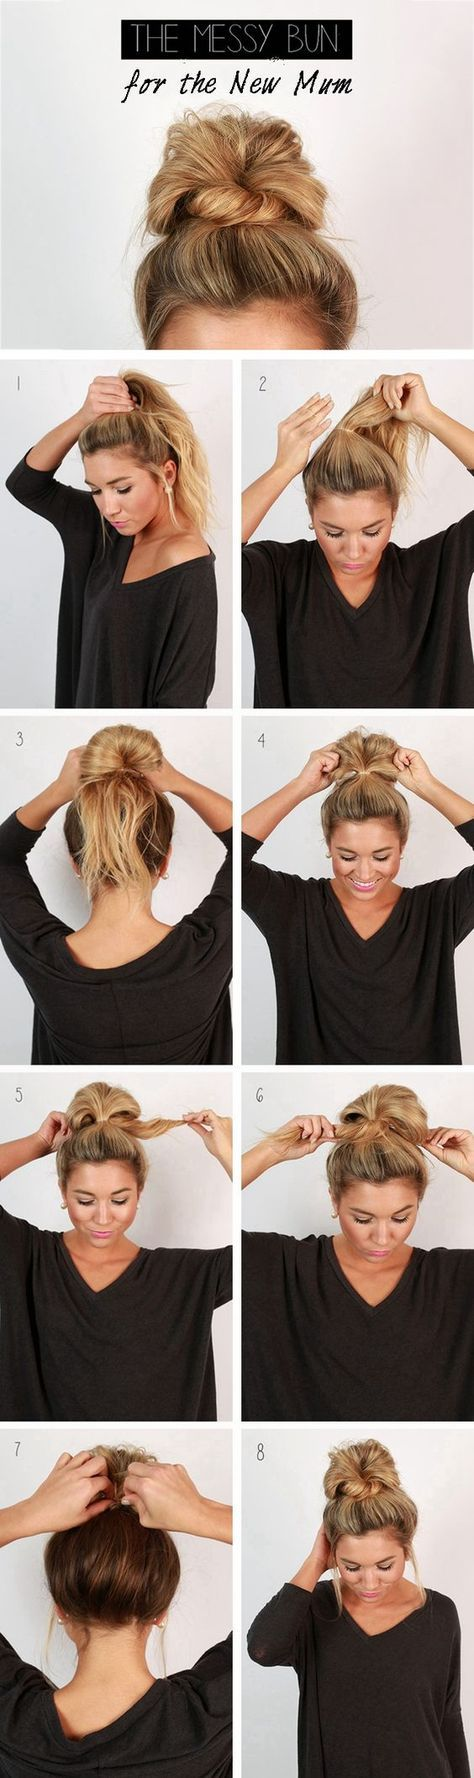 26 Amazing Bun Updo Ideas For Long Medium Length Hair Pretty Designs Long Hair Styles Hair Styles Medium Length Hair Styles